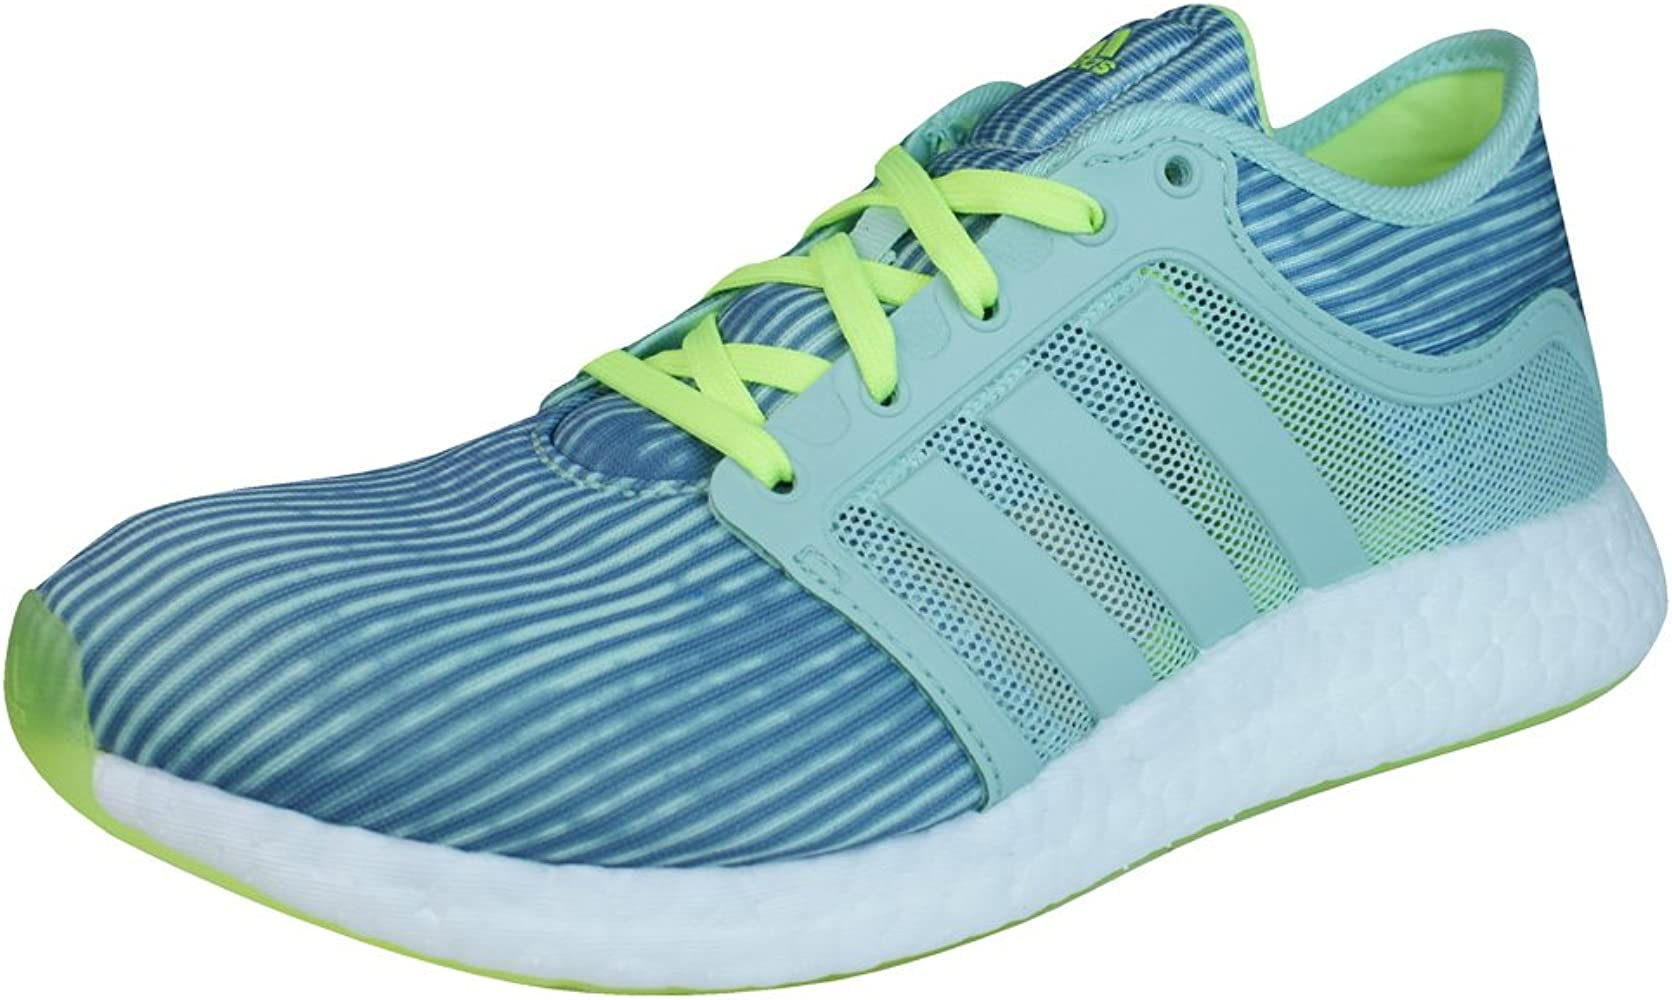 adidas Climachill Rocket Boost Womens Running Sneakers/Shoes